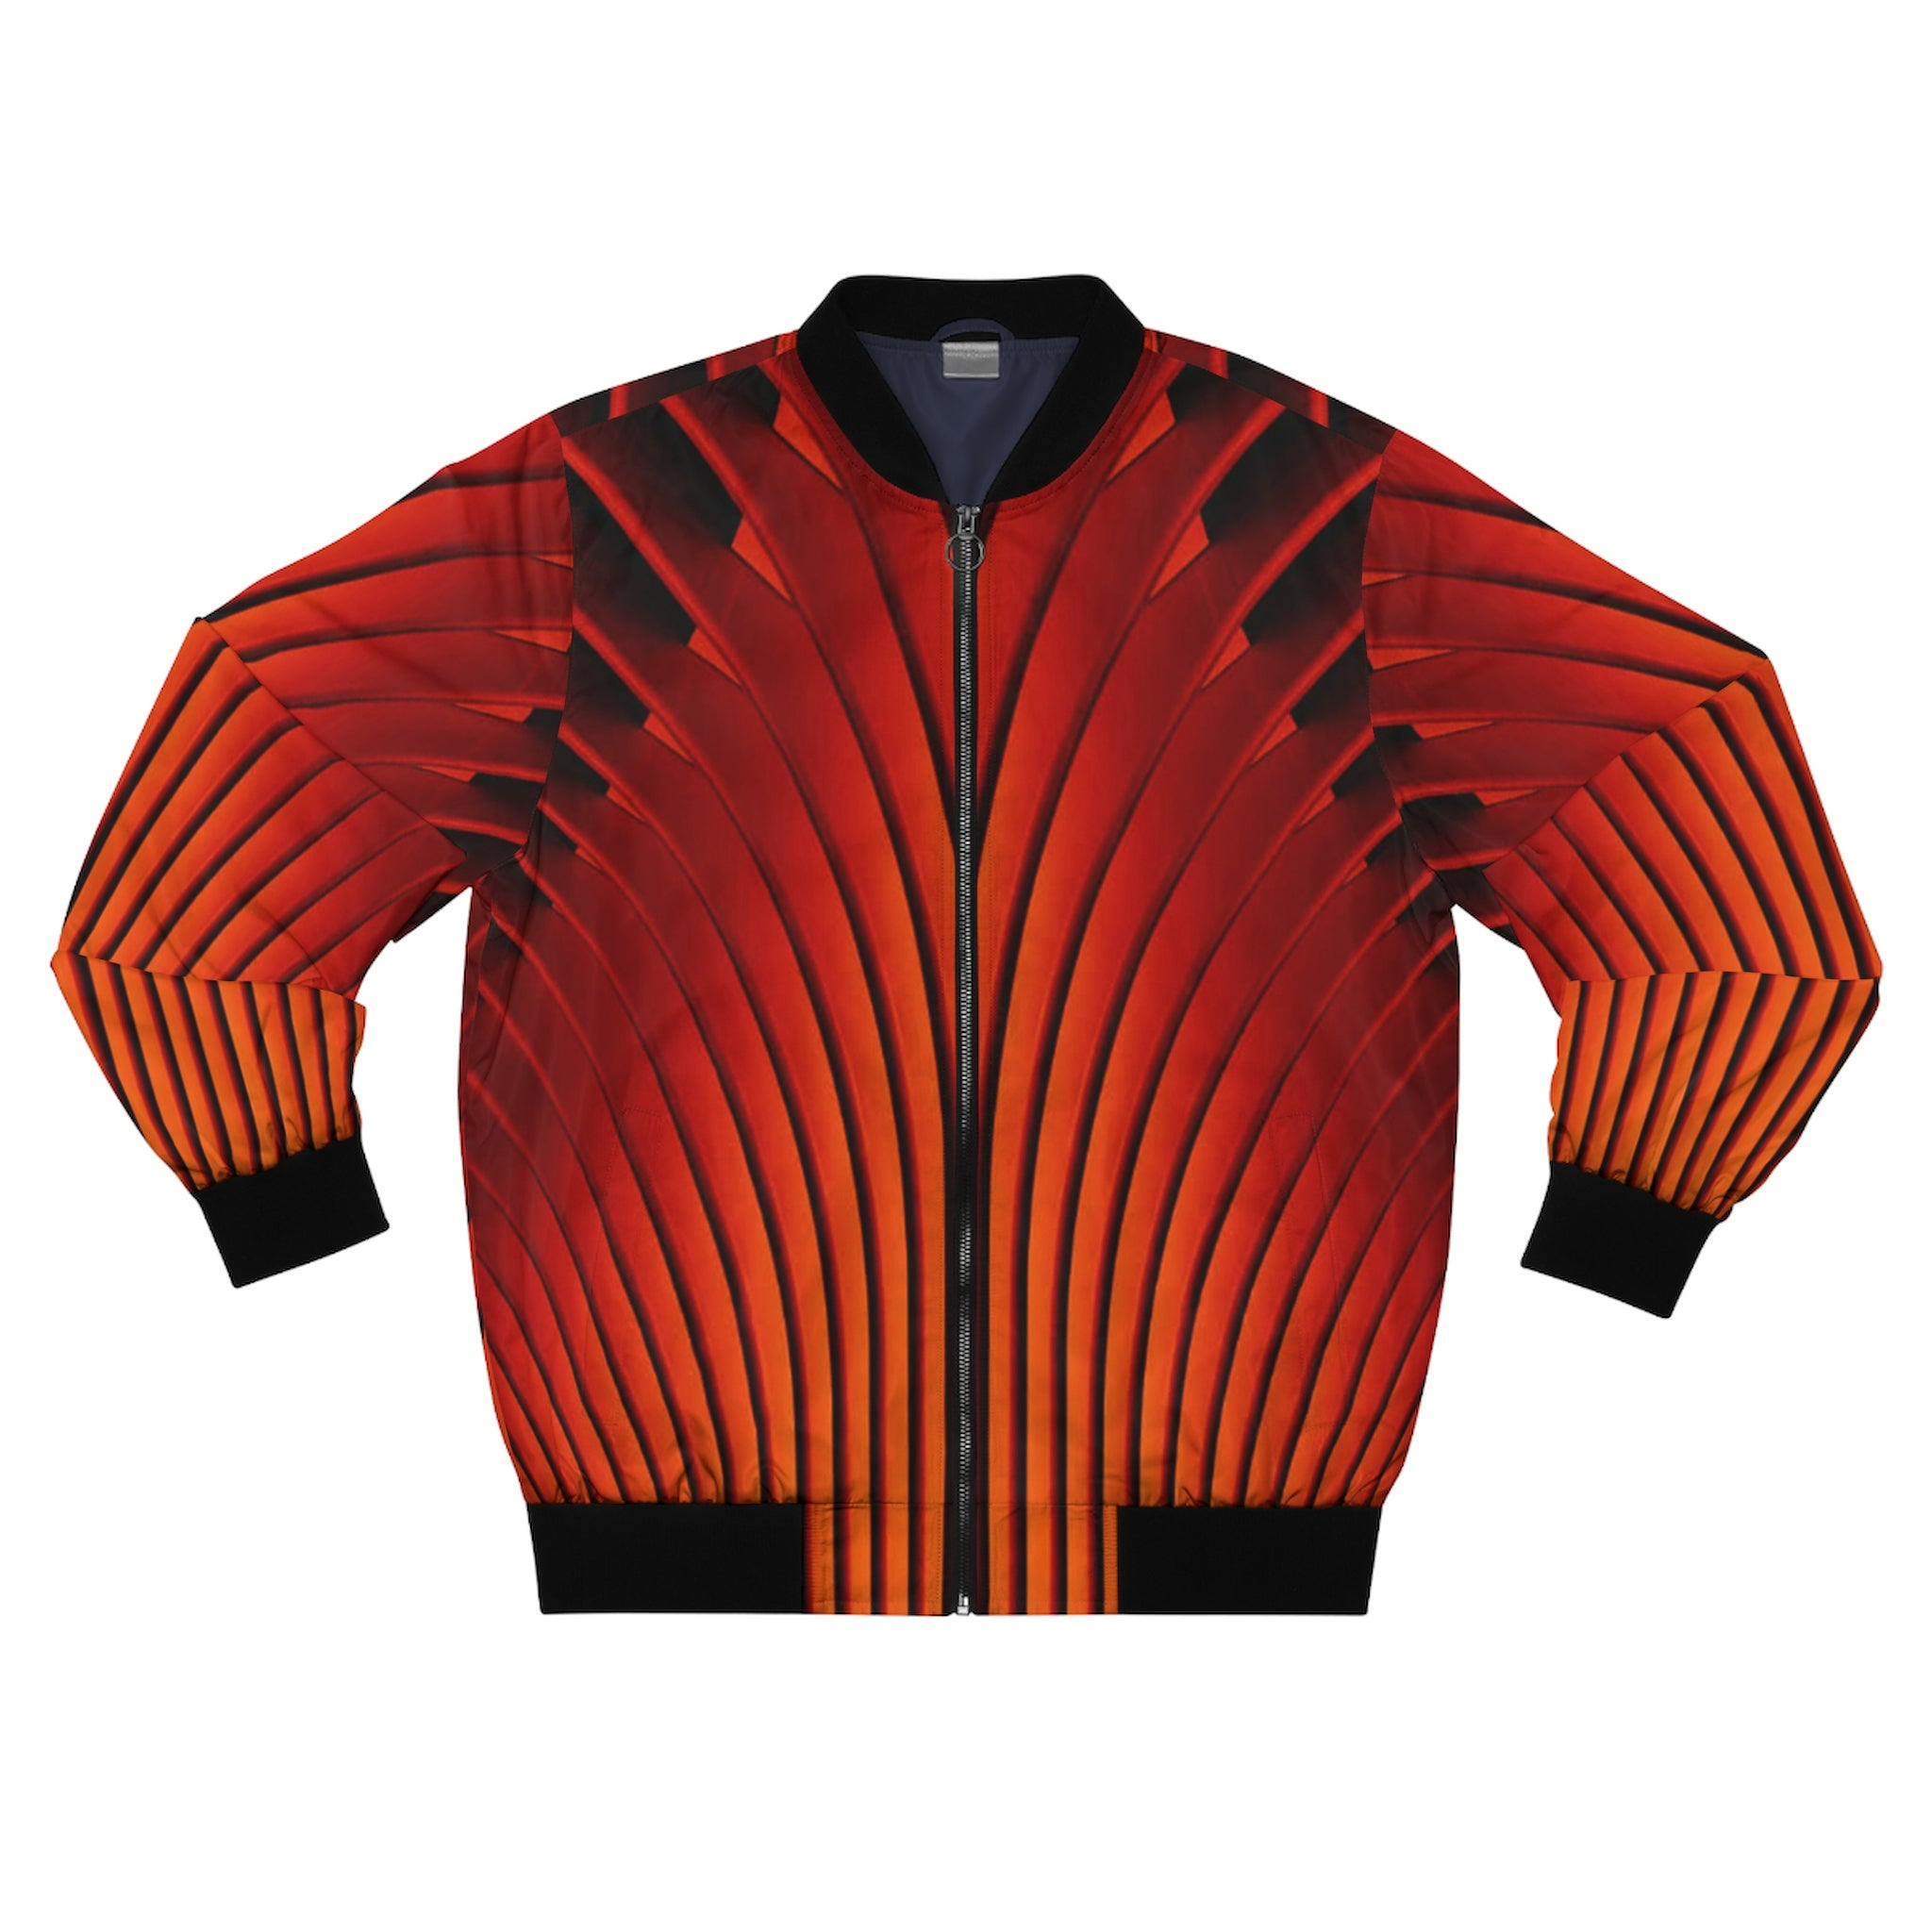 Racin' Fire Men's AOP Bomber Jacket